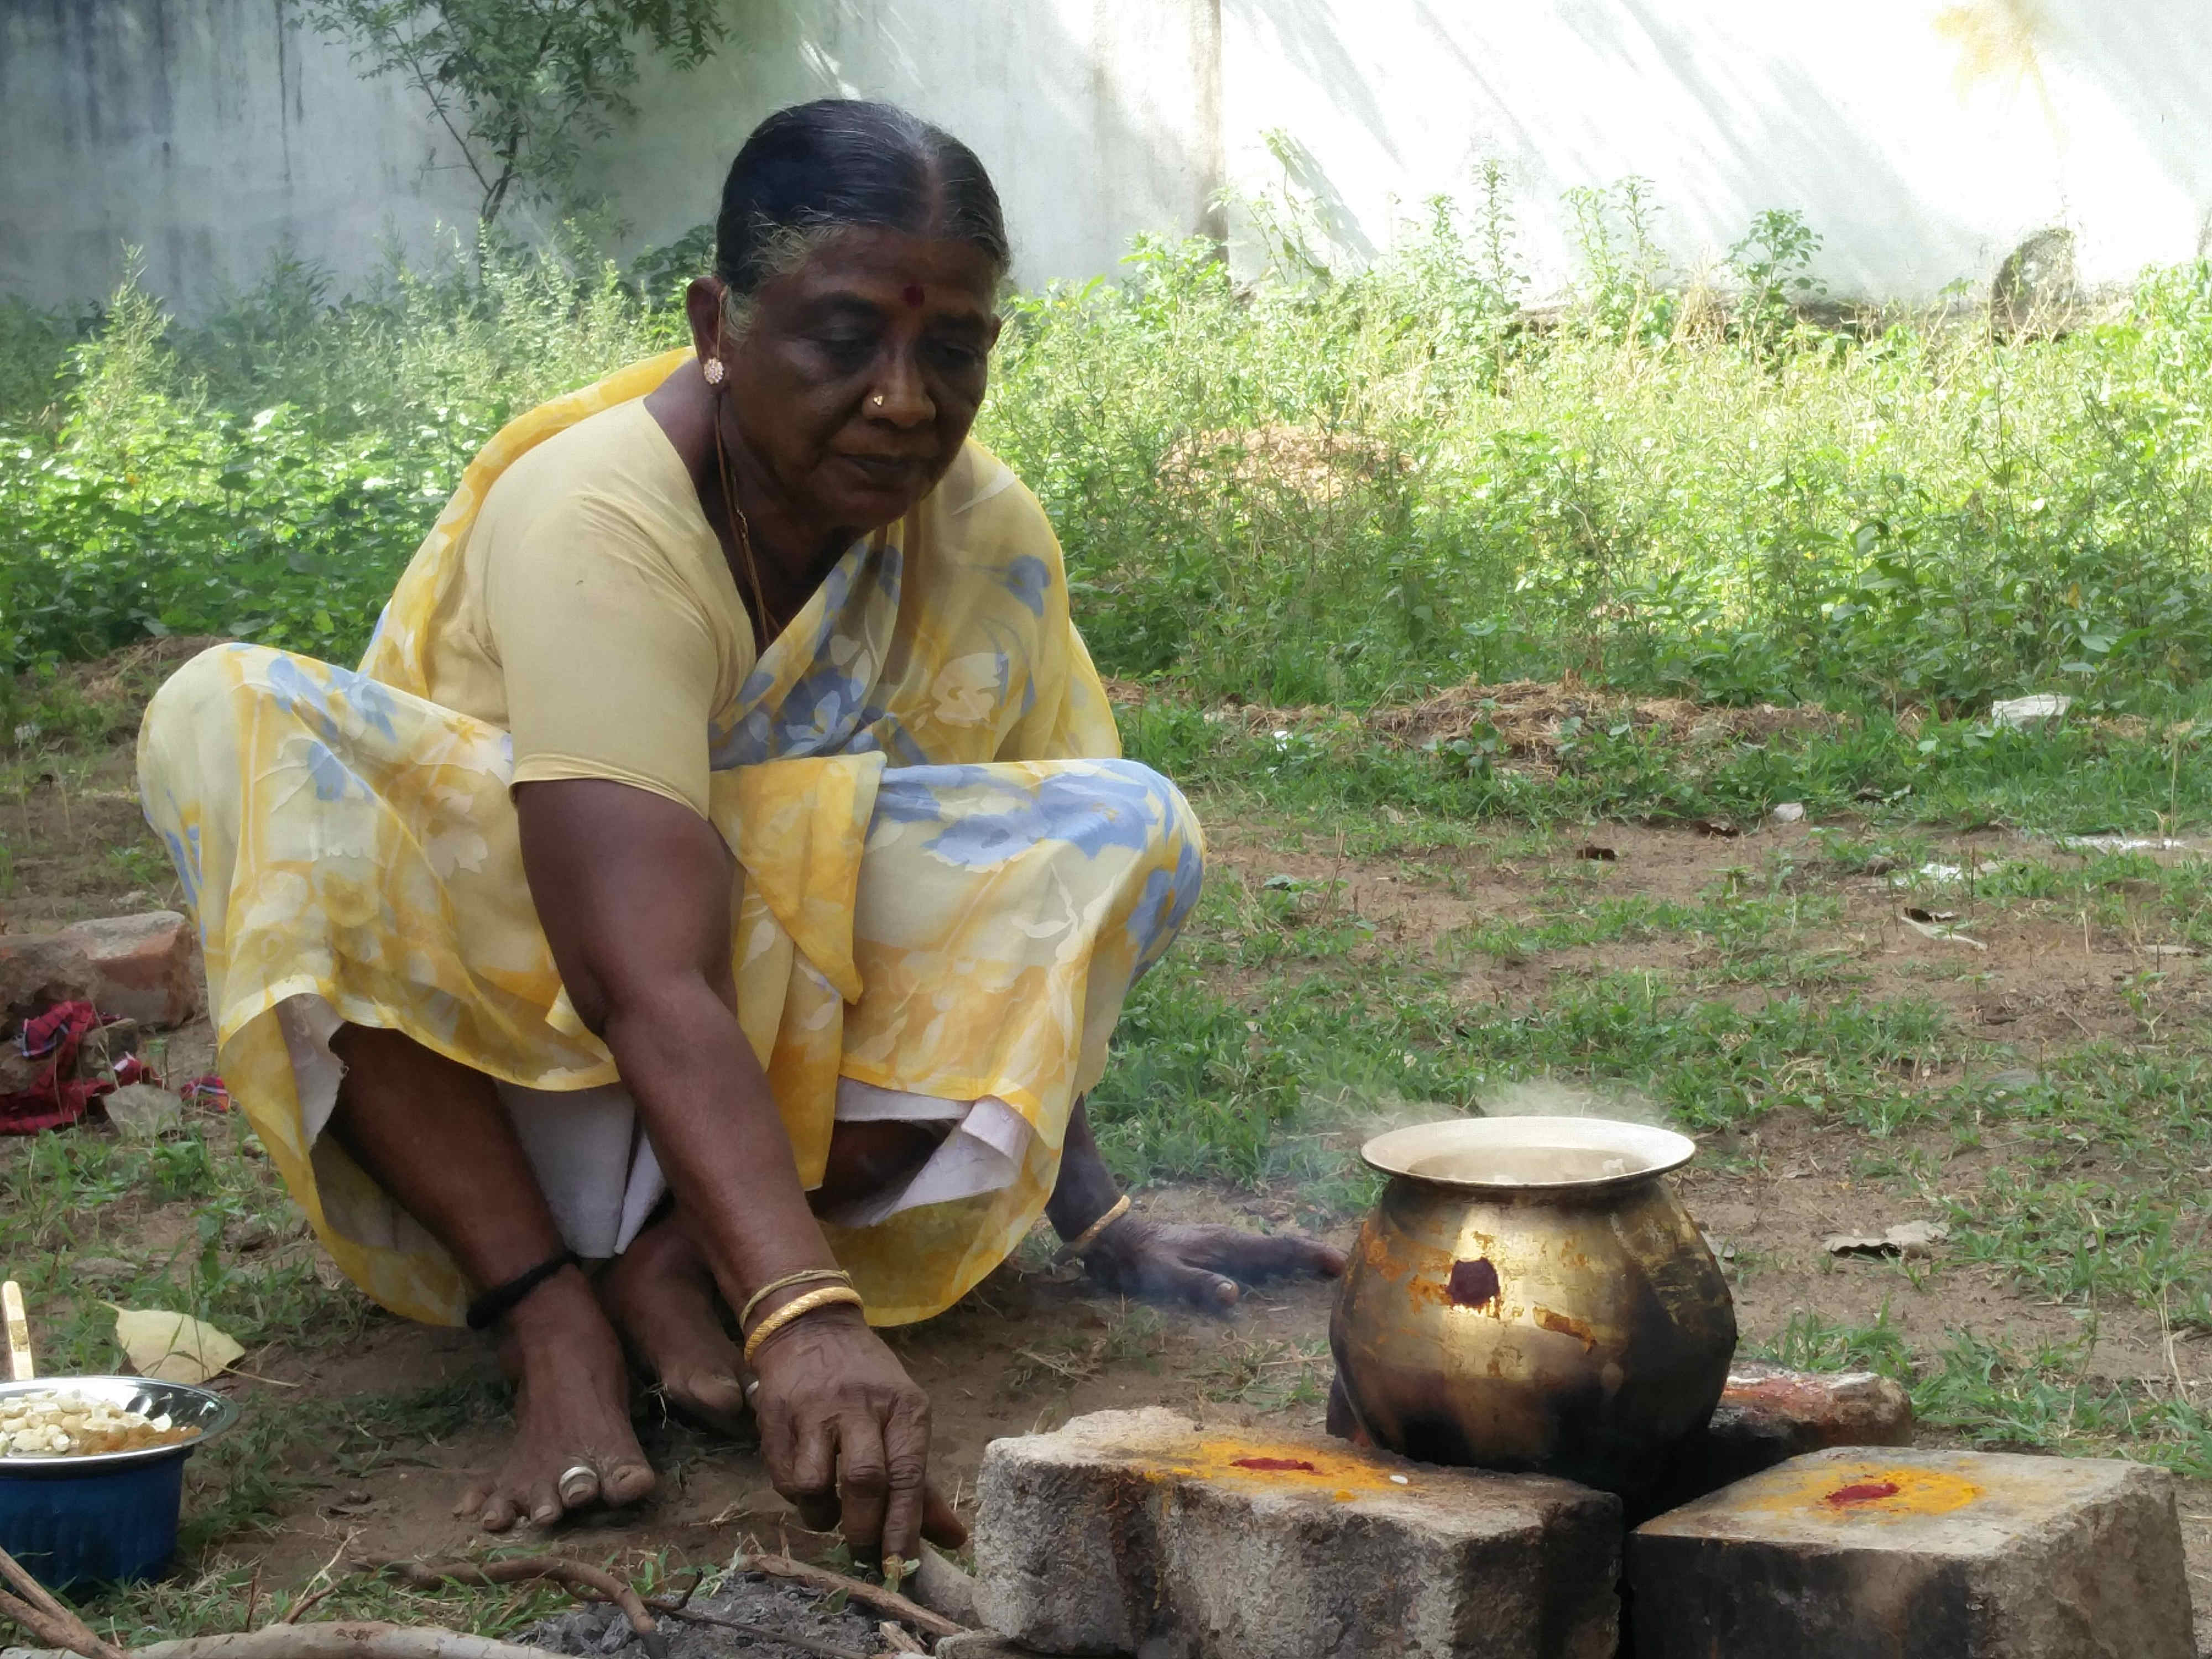 A lady preparing Pongal, a popular rice dish.